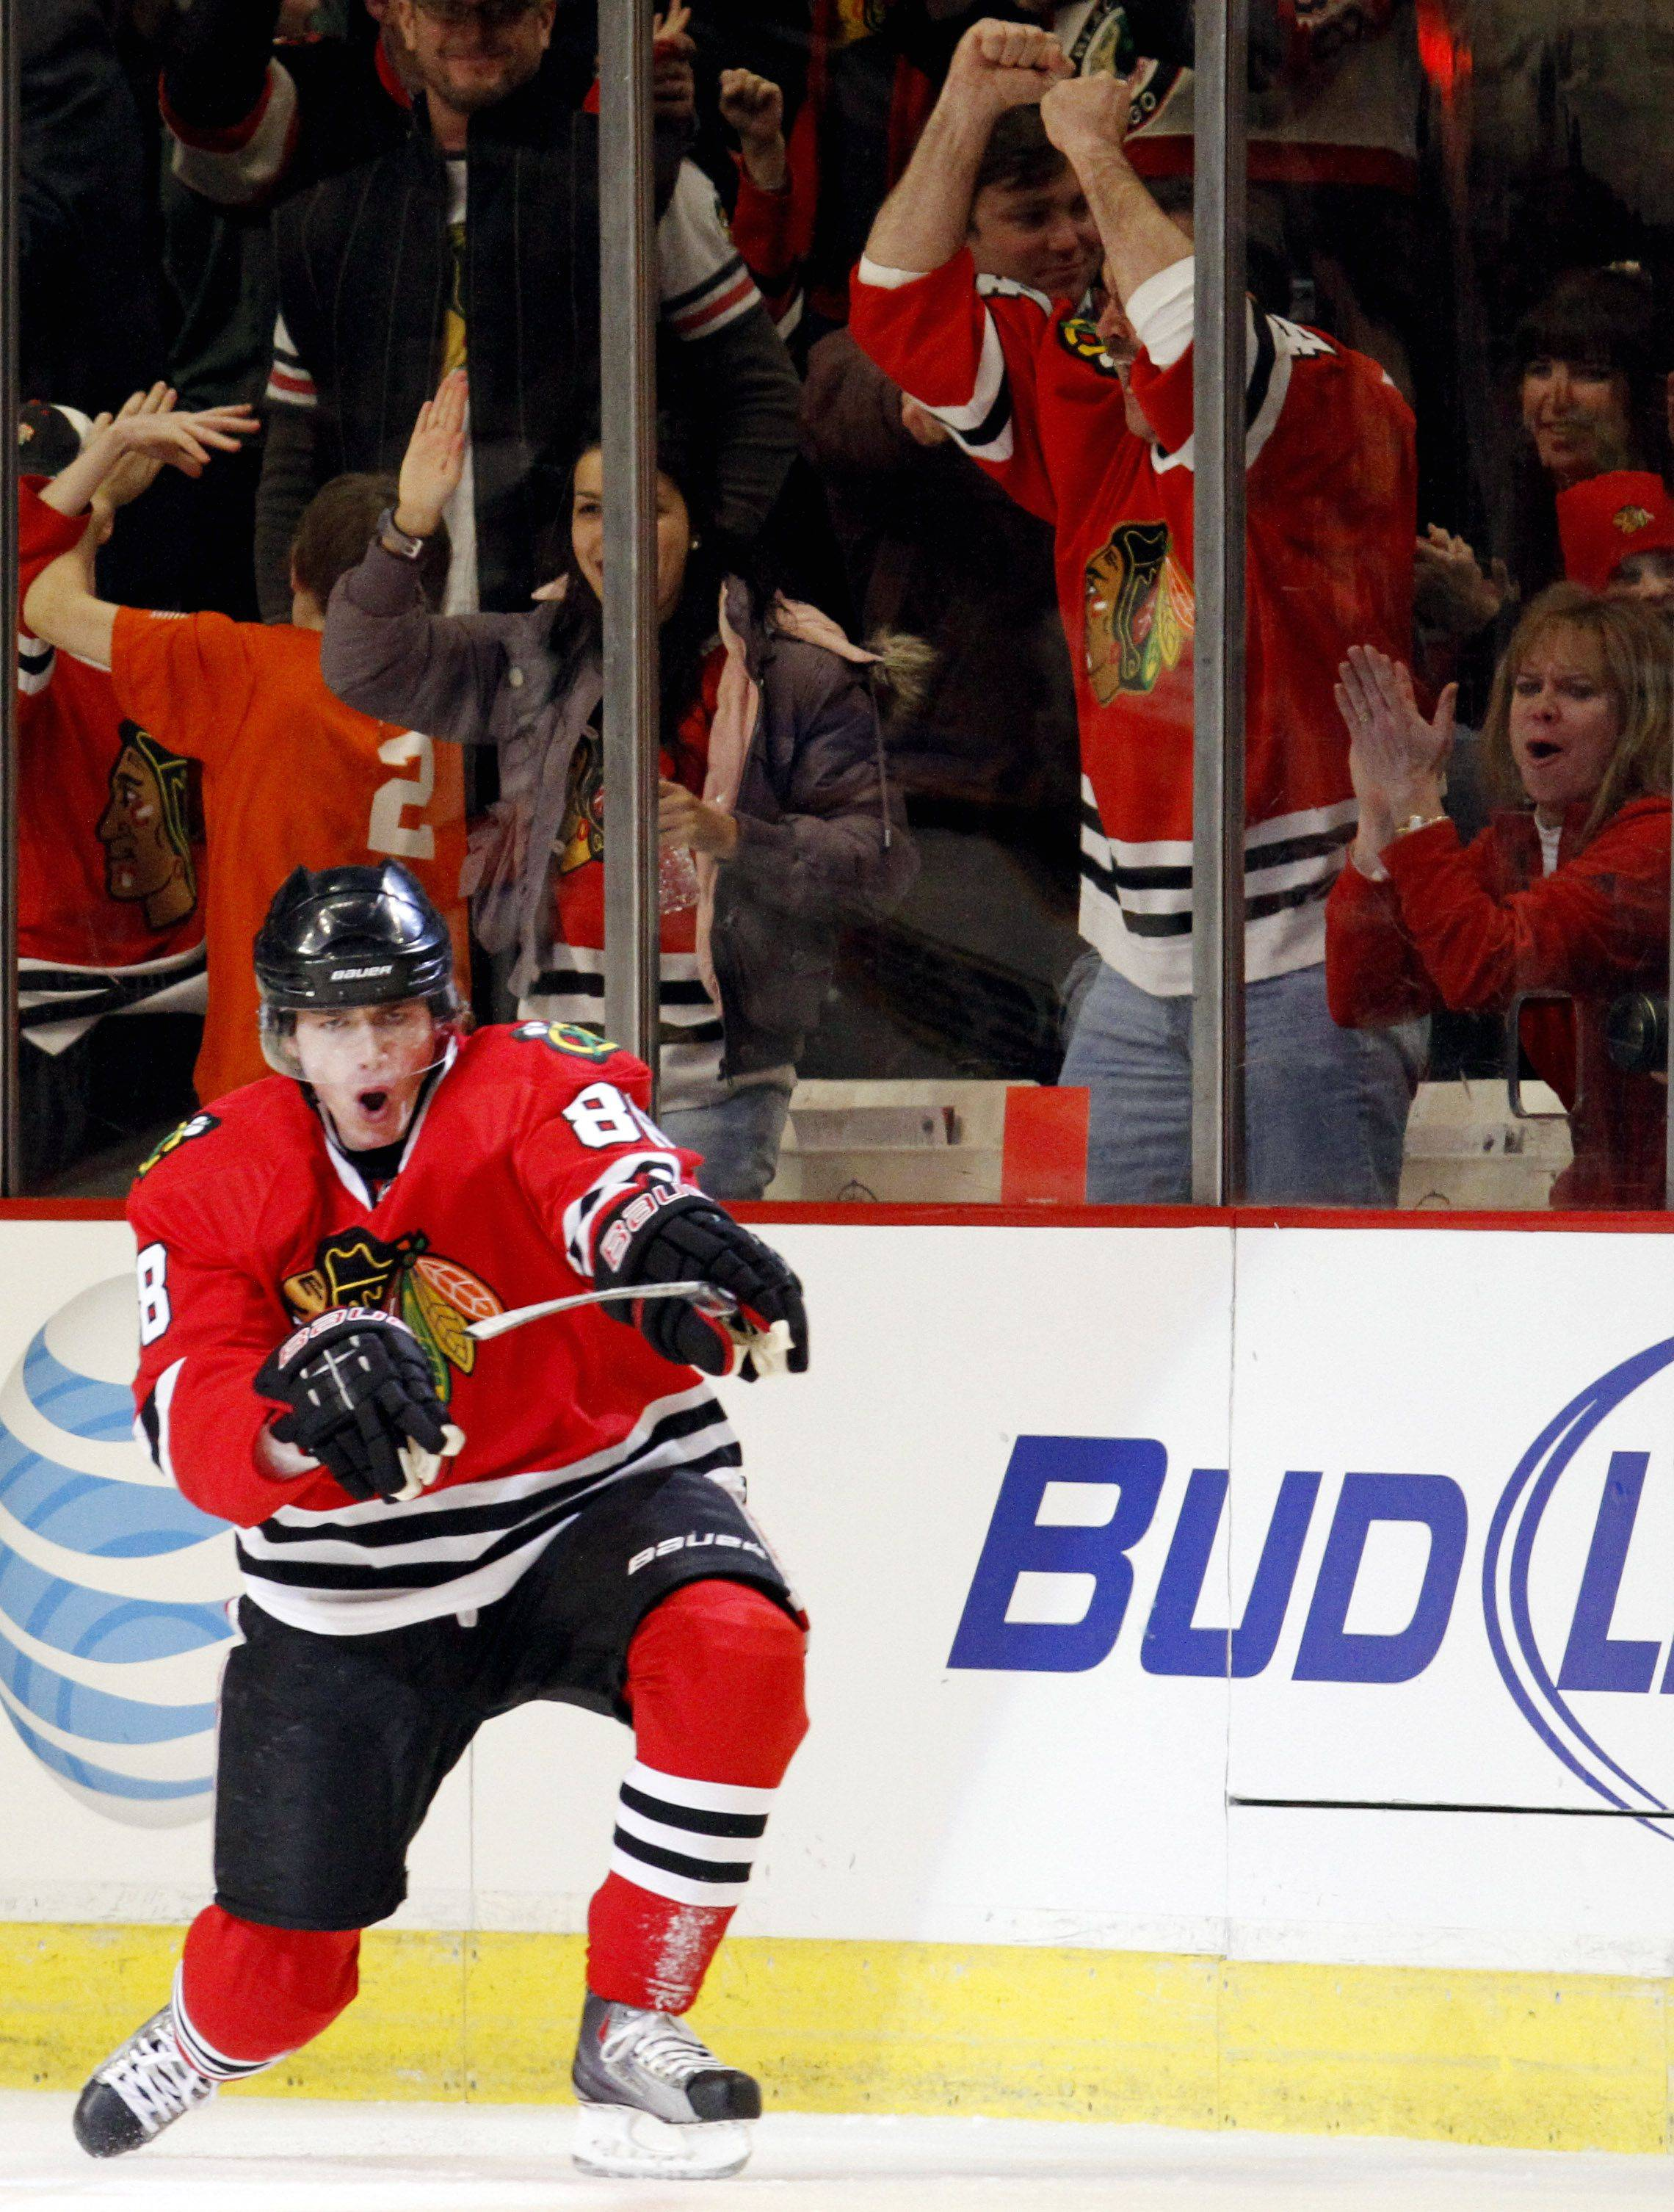 While some Blackhawks fans would like to see the team trade Patrick Kane, he's a point-a-game scorer who's only going to get better and better and it would be foolish to trade him, says veteran sportswriter Tim Sassone.